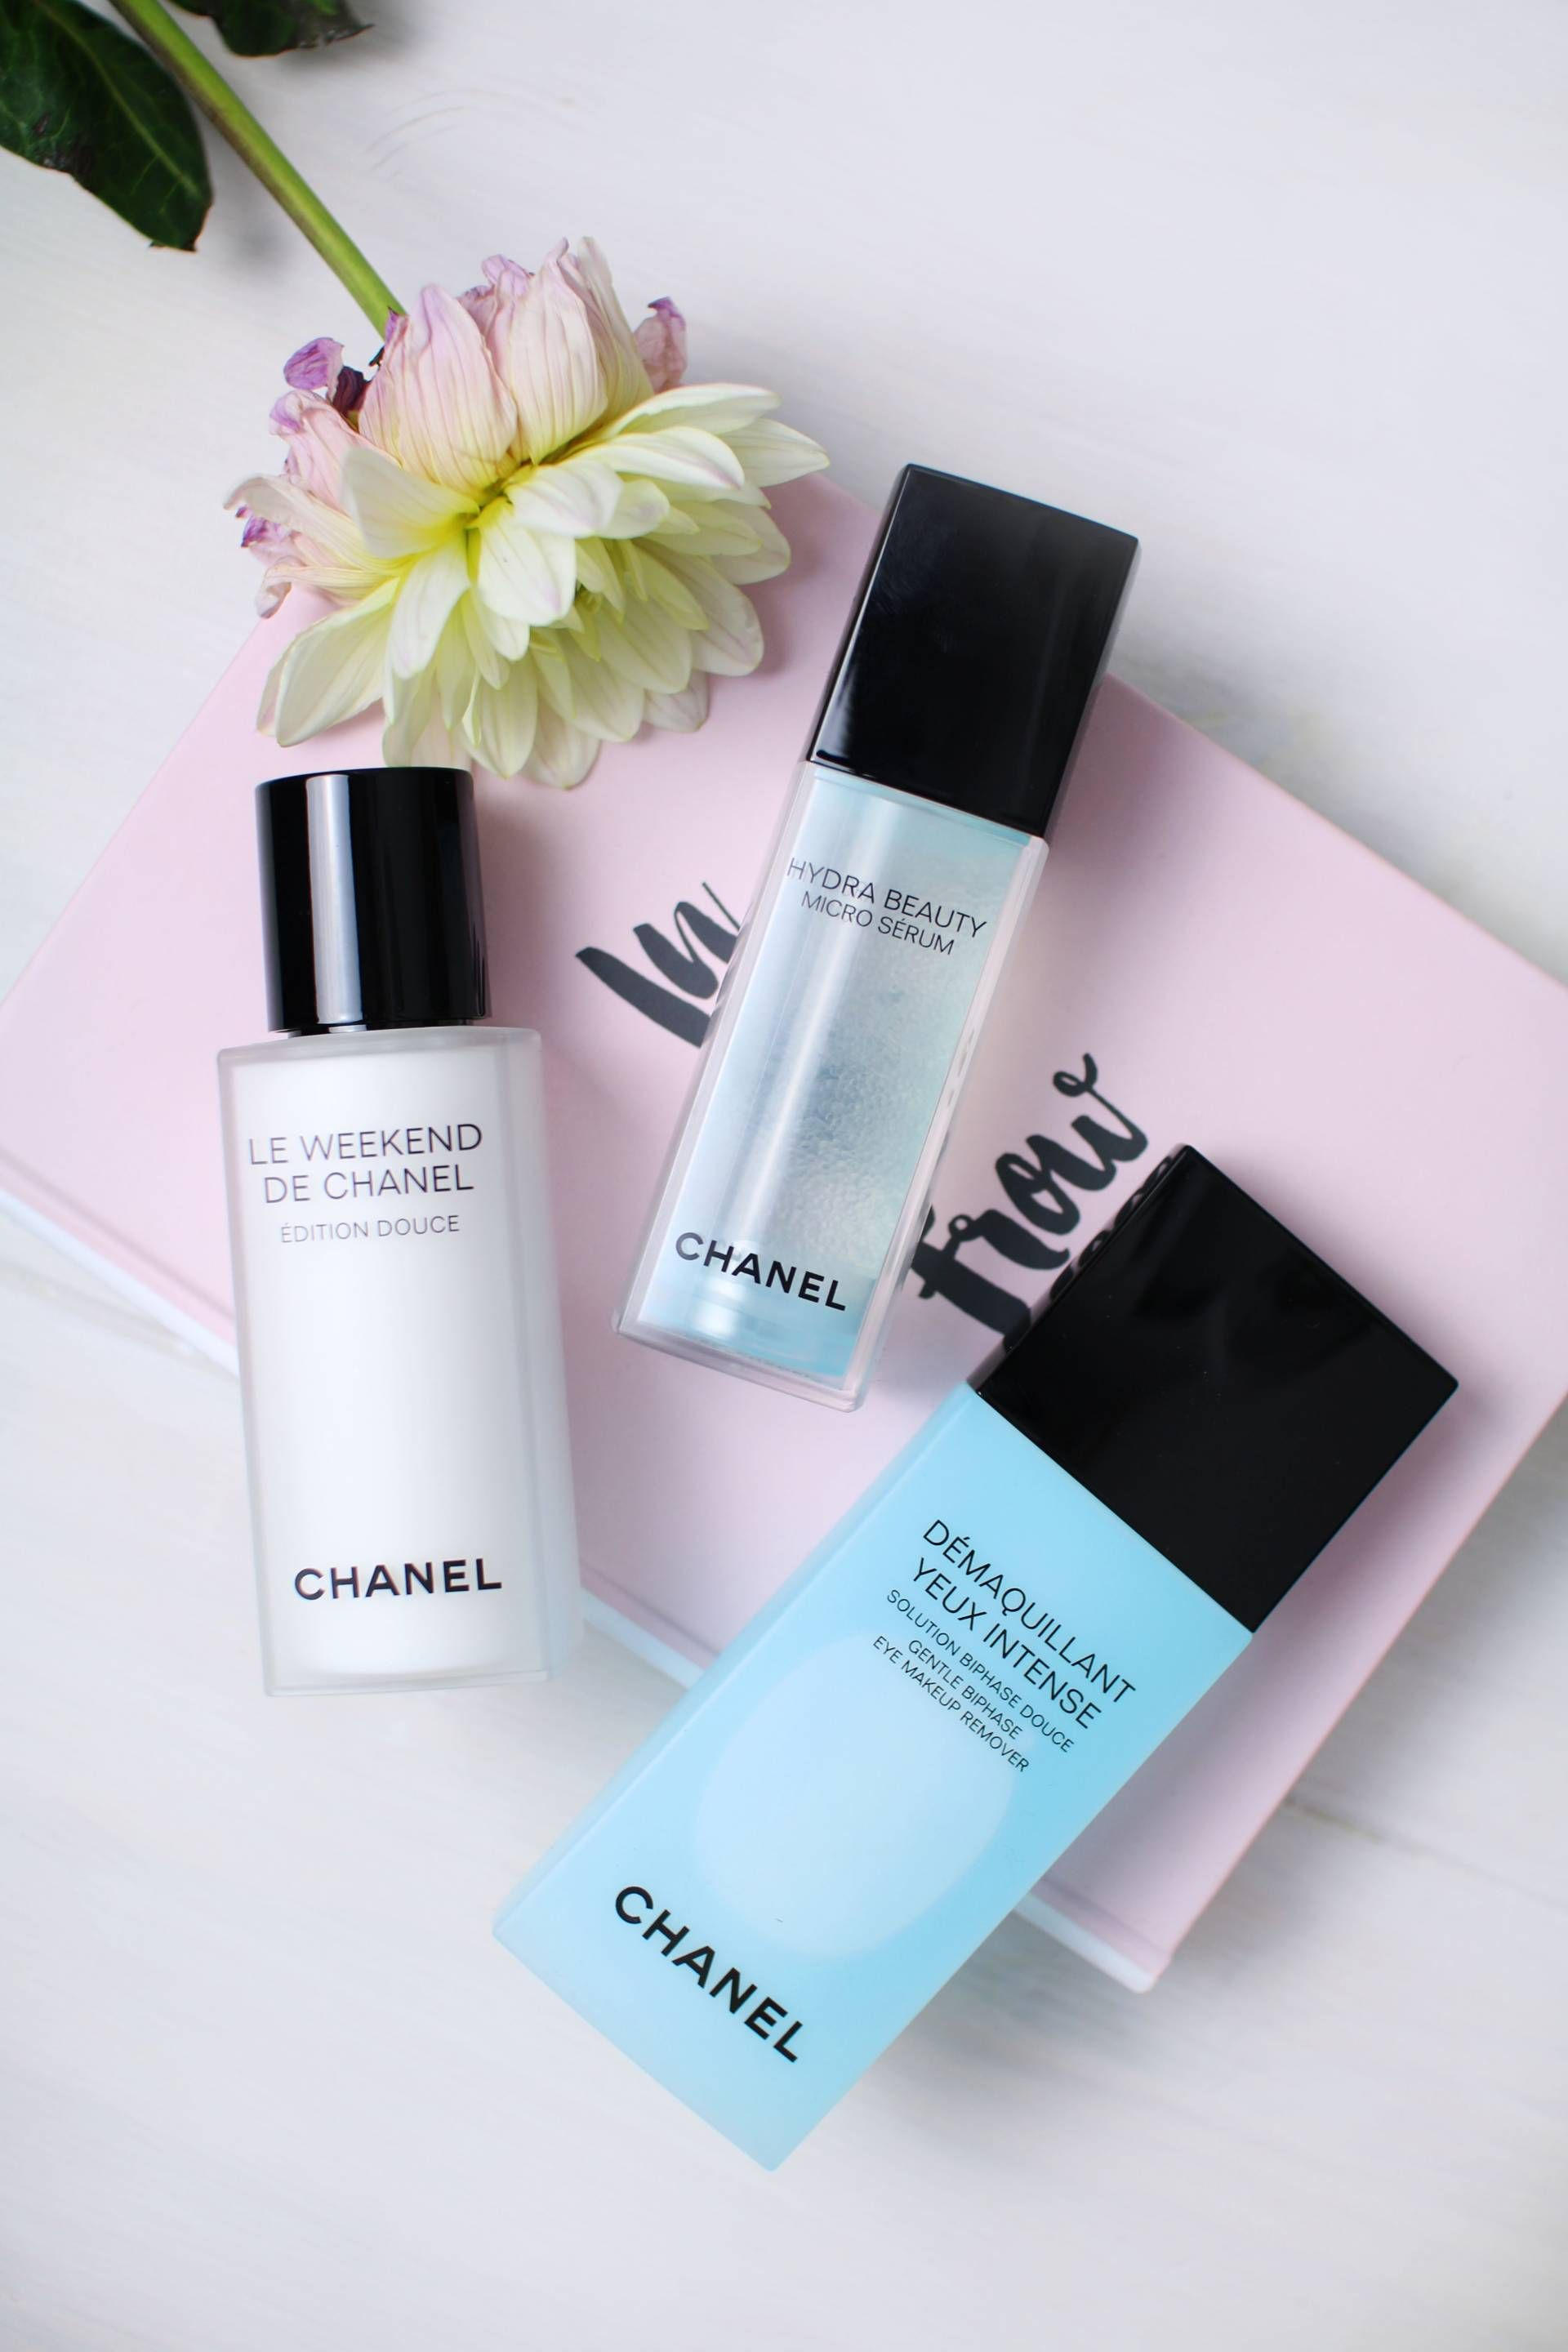 Chanel Skincare for the Weekend Chanel hydra beauty